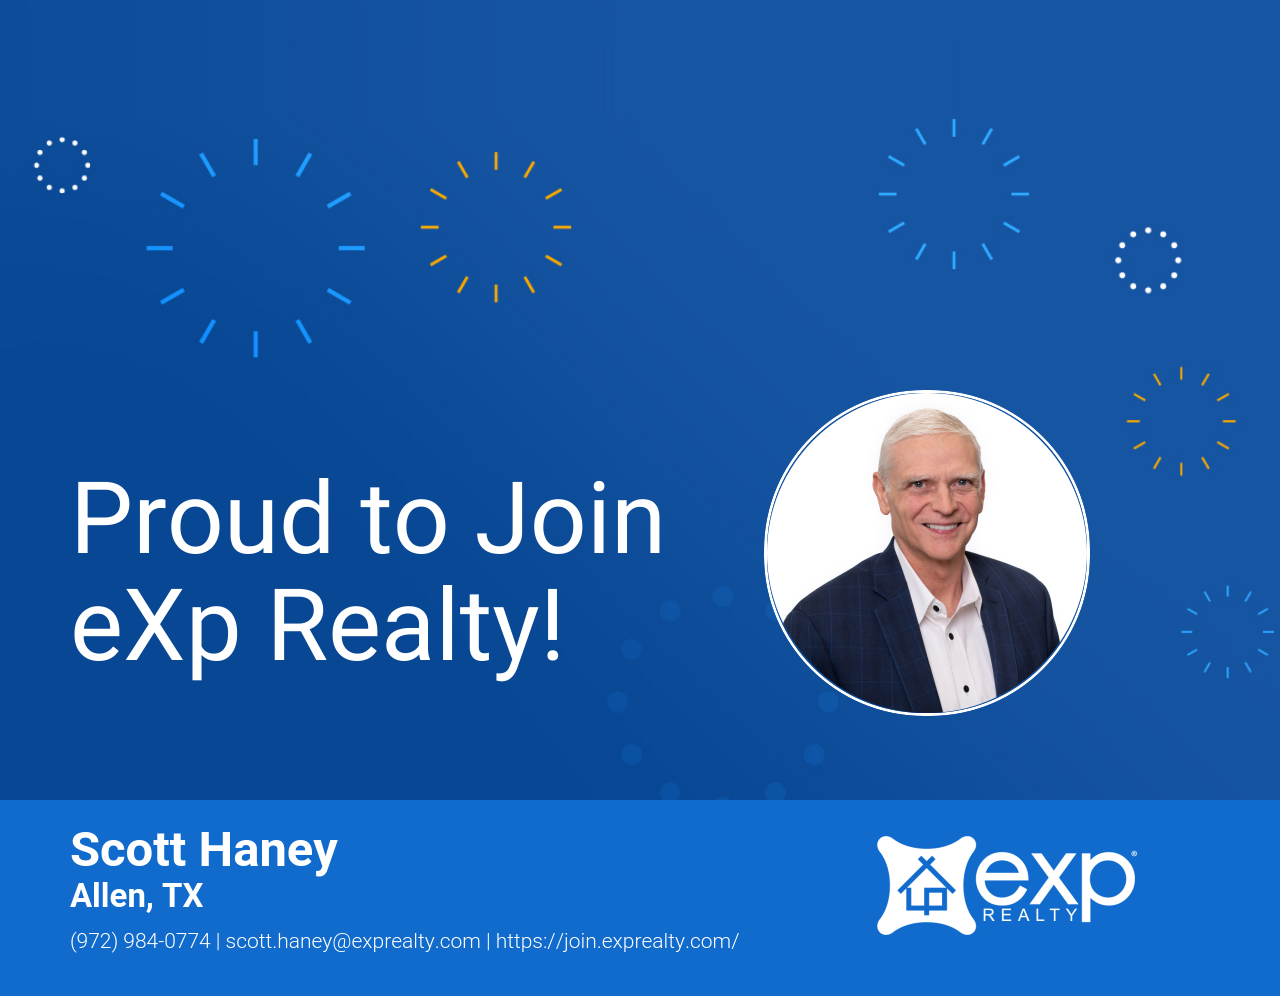 eXp Realty Welcomes Scott Haney!